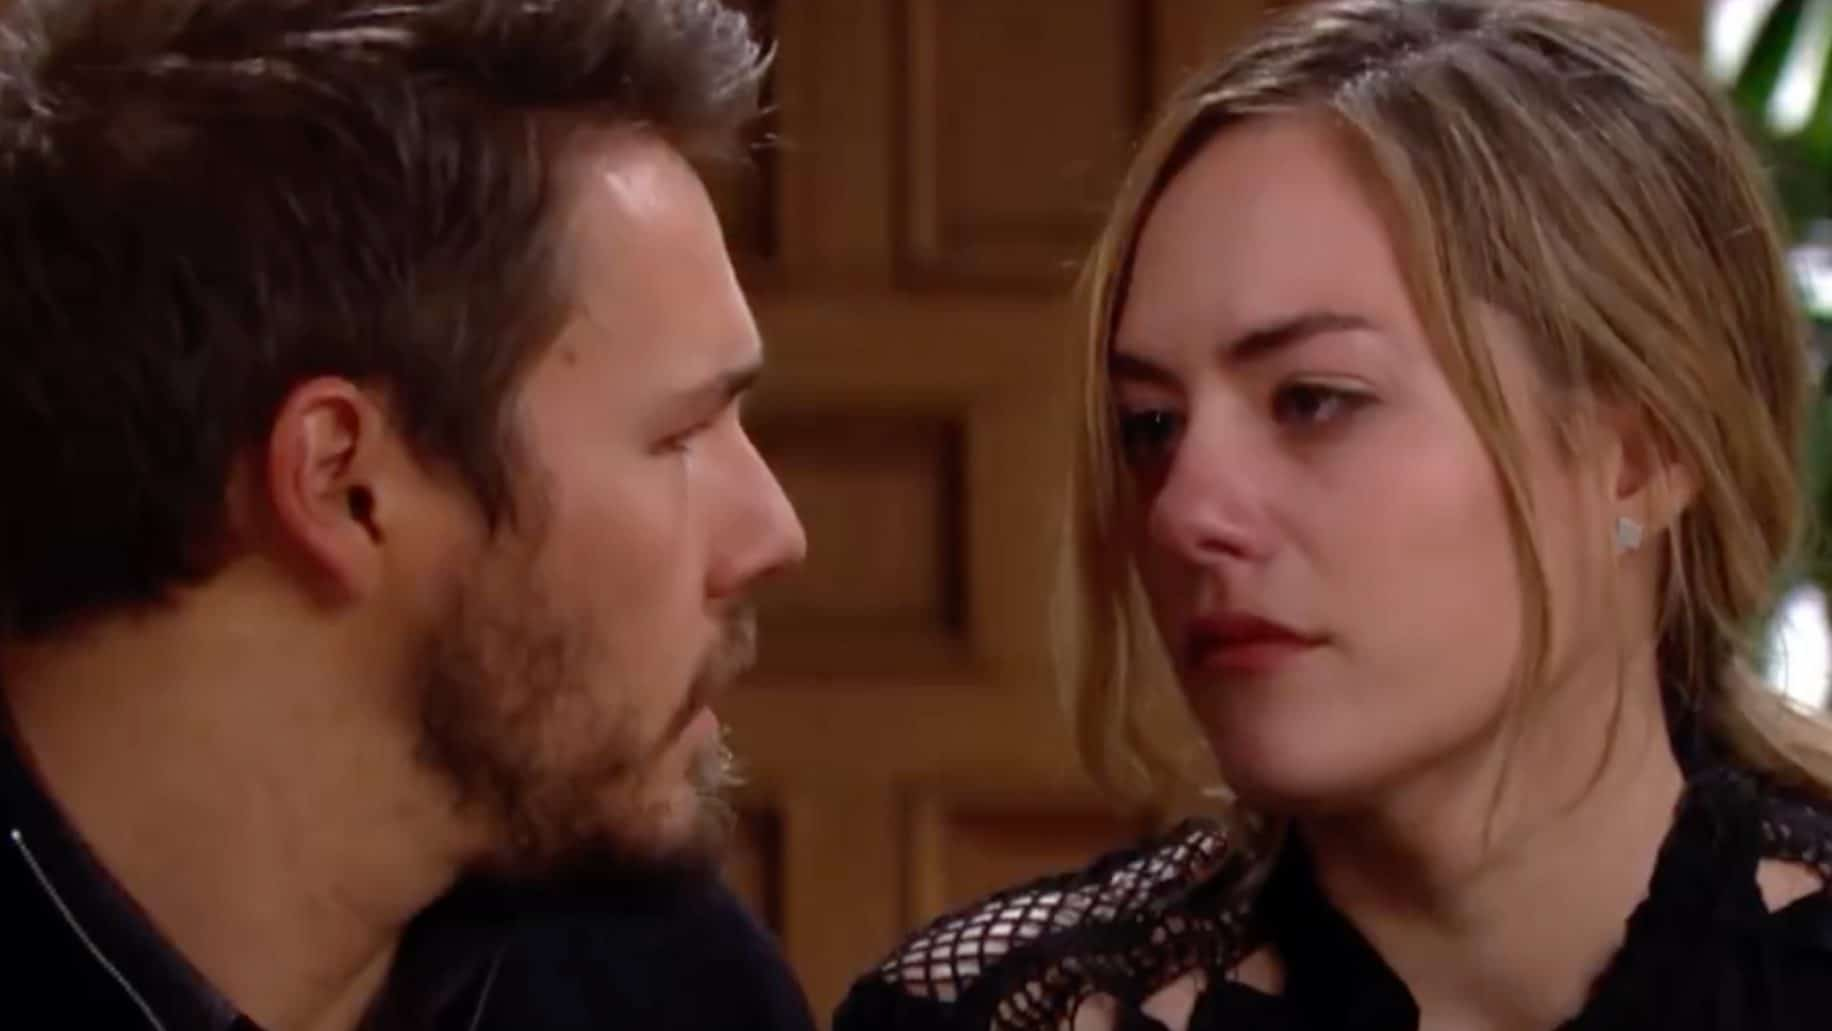 liam hope the bold and beautiful - The Bold and the Beautiful spoilers for next week: Reverberations from Lope's tragedy bring odd couples together and suspicious motives emerge